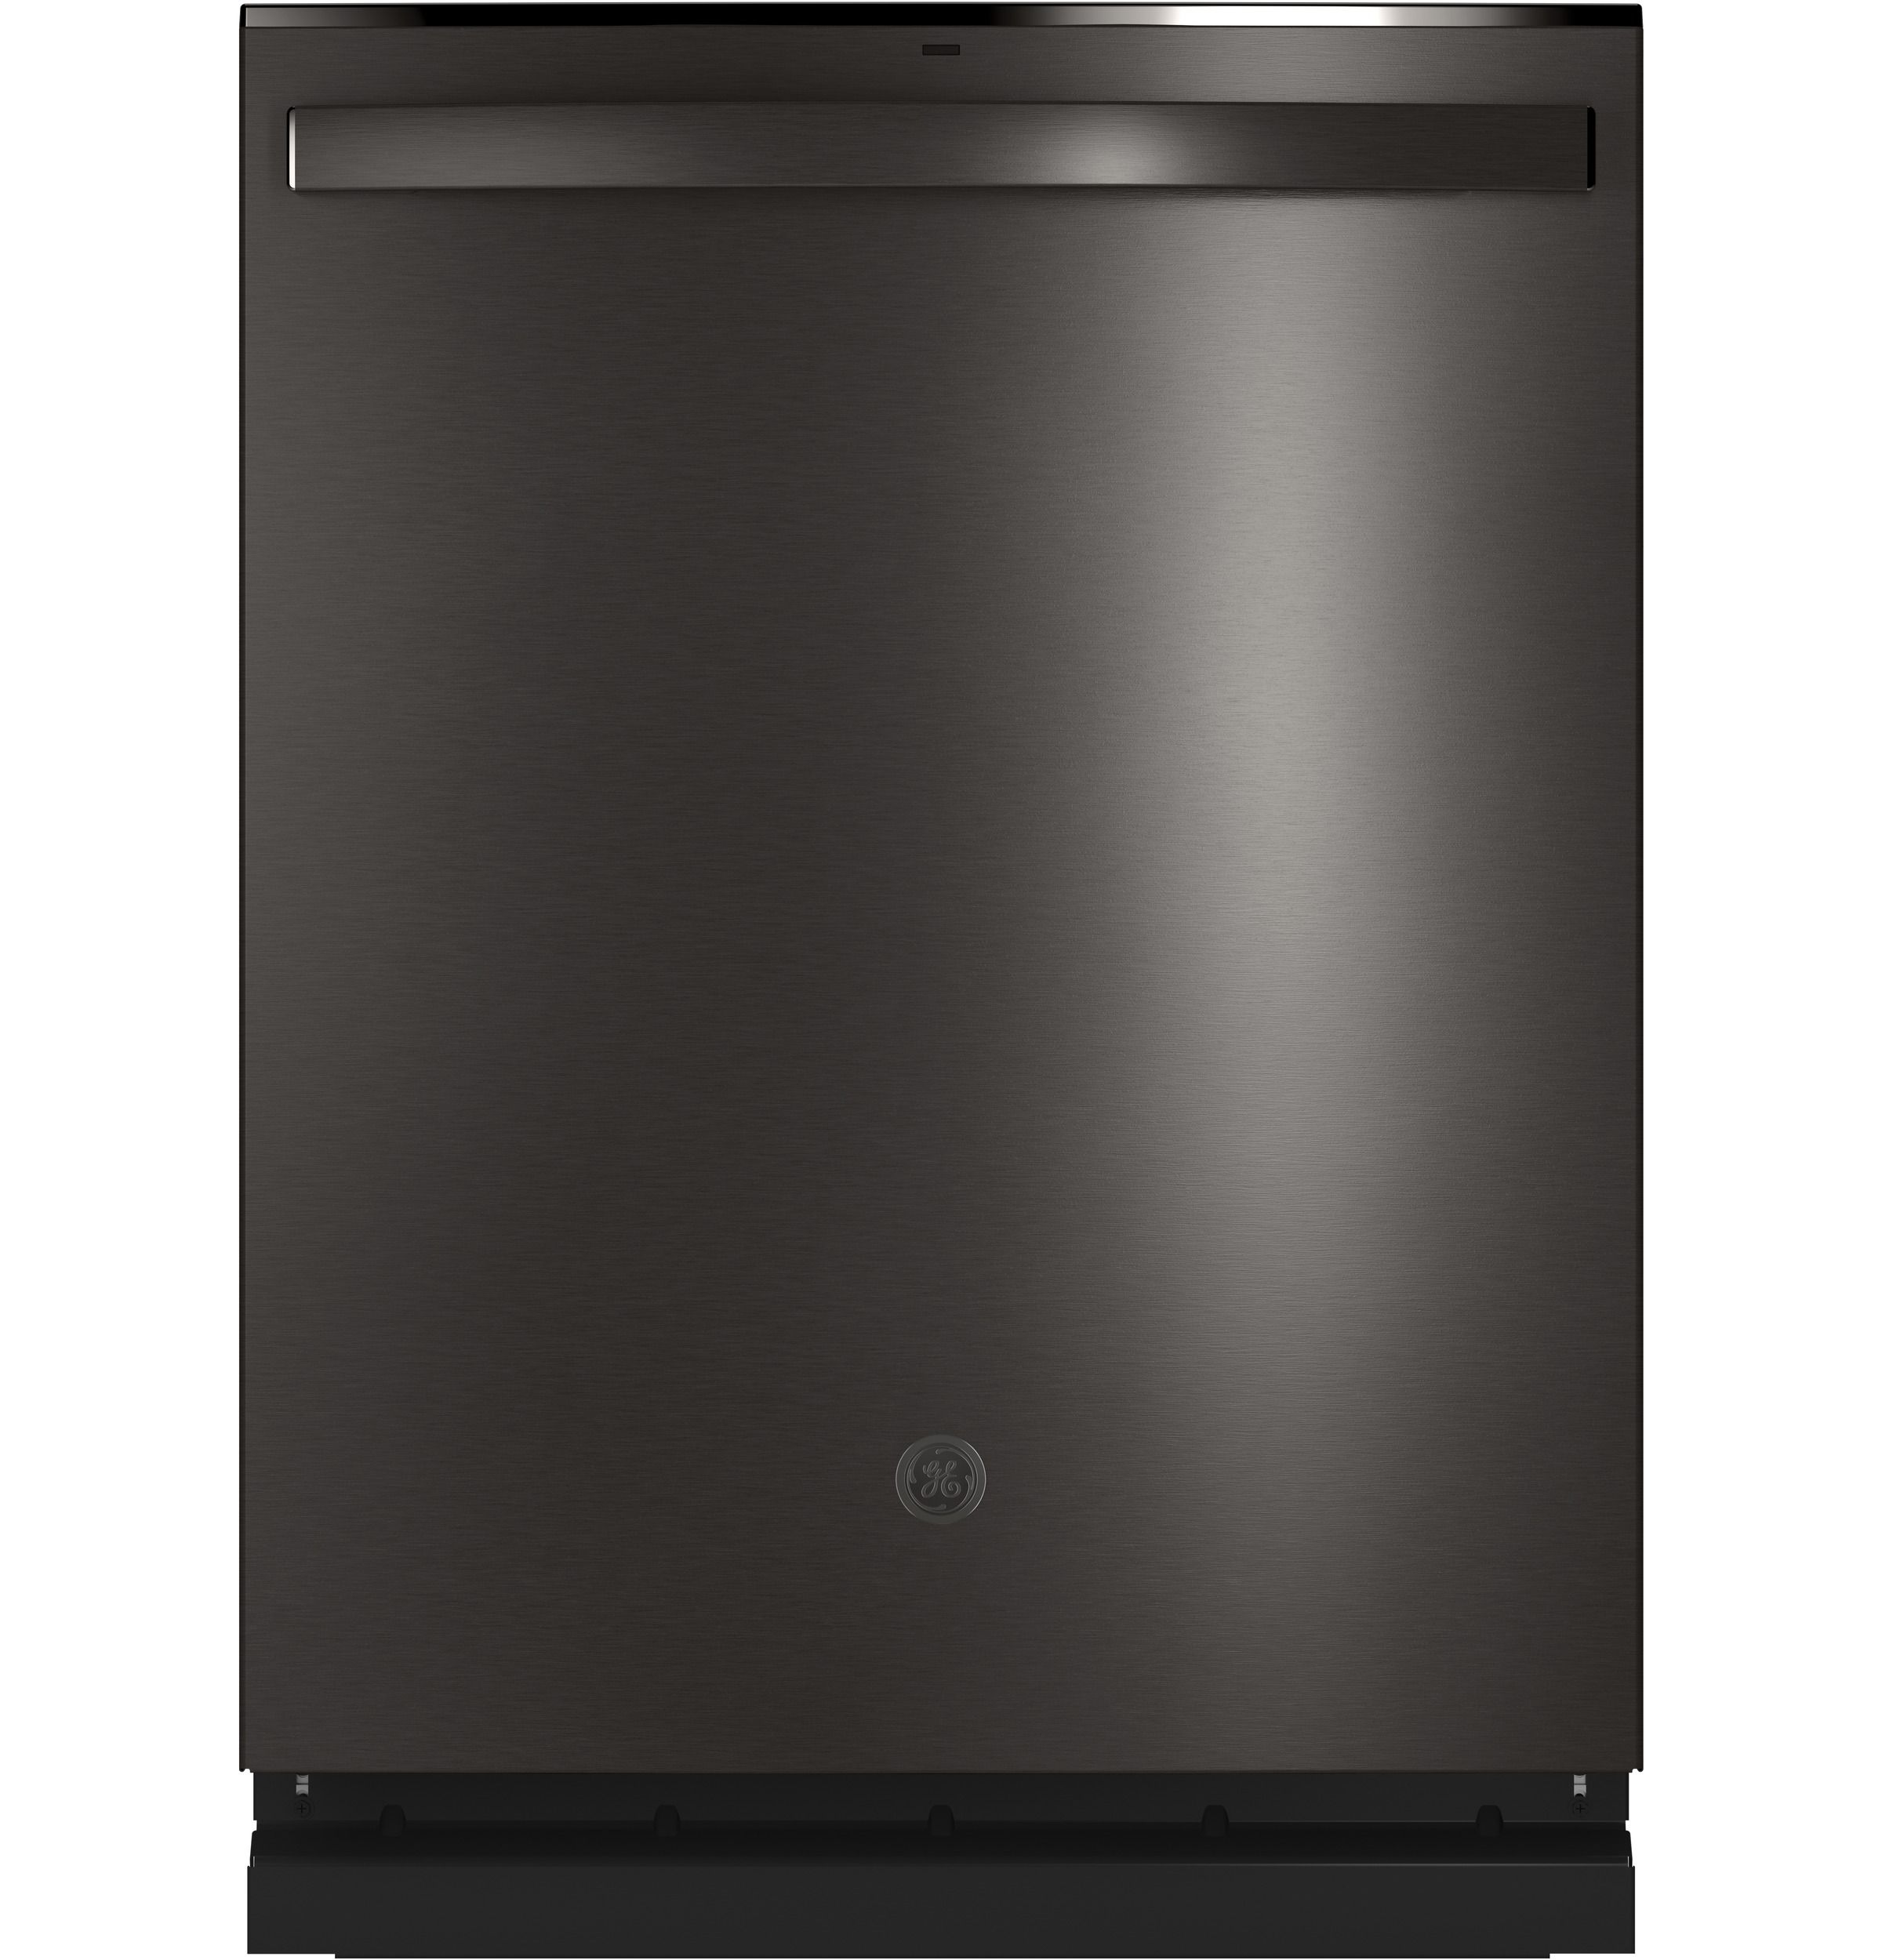 Ge Profile Top Control With Stainless Steel Interior Dishwasher With Sanitize Cycle Twin Turbo Dry Boost Pdt785sbnts In 2020 Steel Tub Built In Dishwasher Black Dishwasher